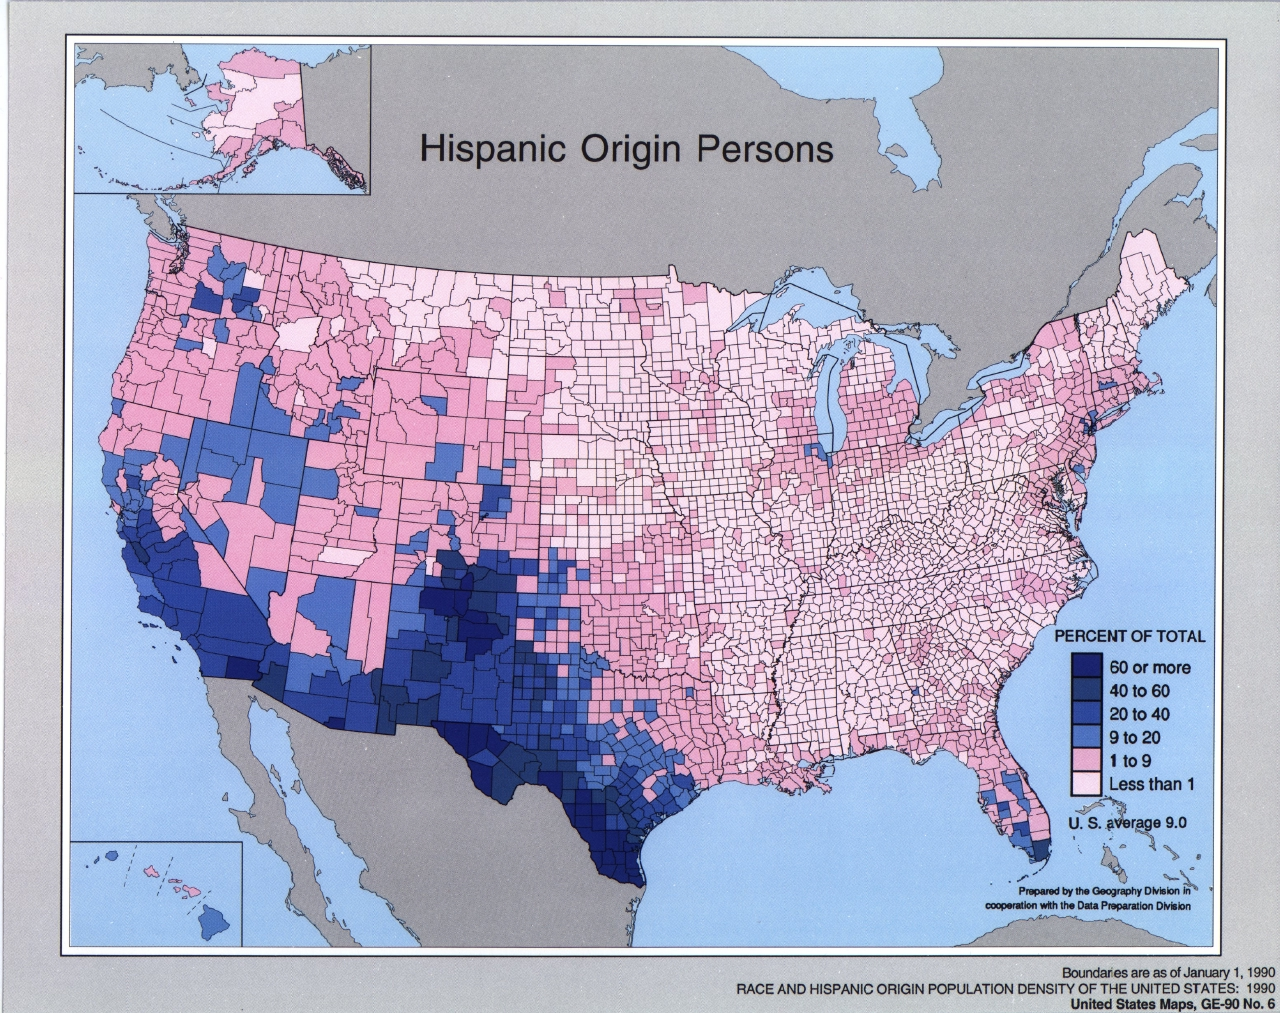 Maps of United States Of AmericaHispanic Origin Persons 1990 (1.24MB)